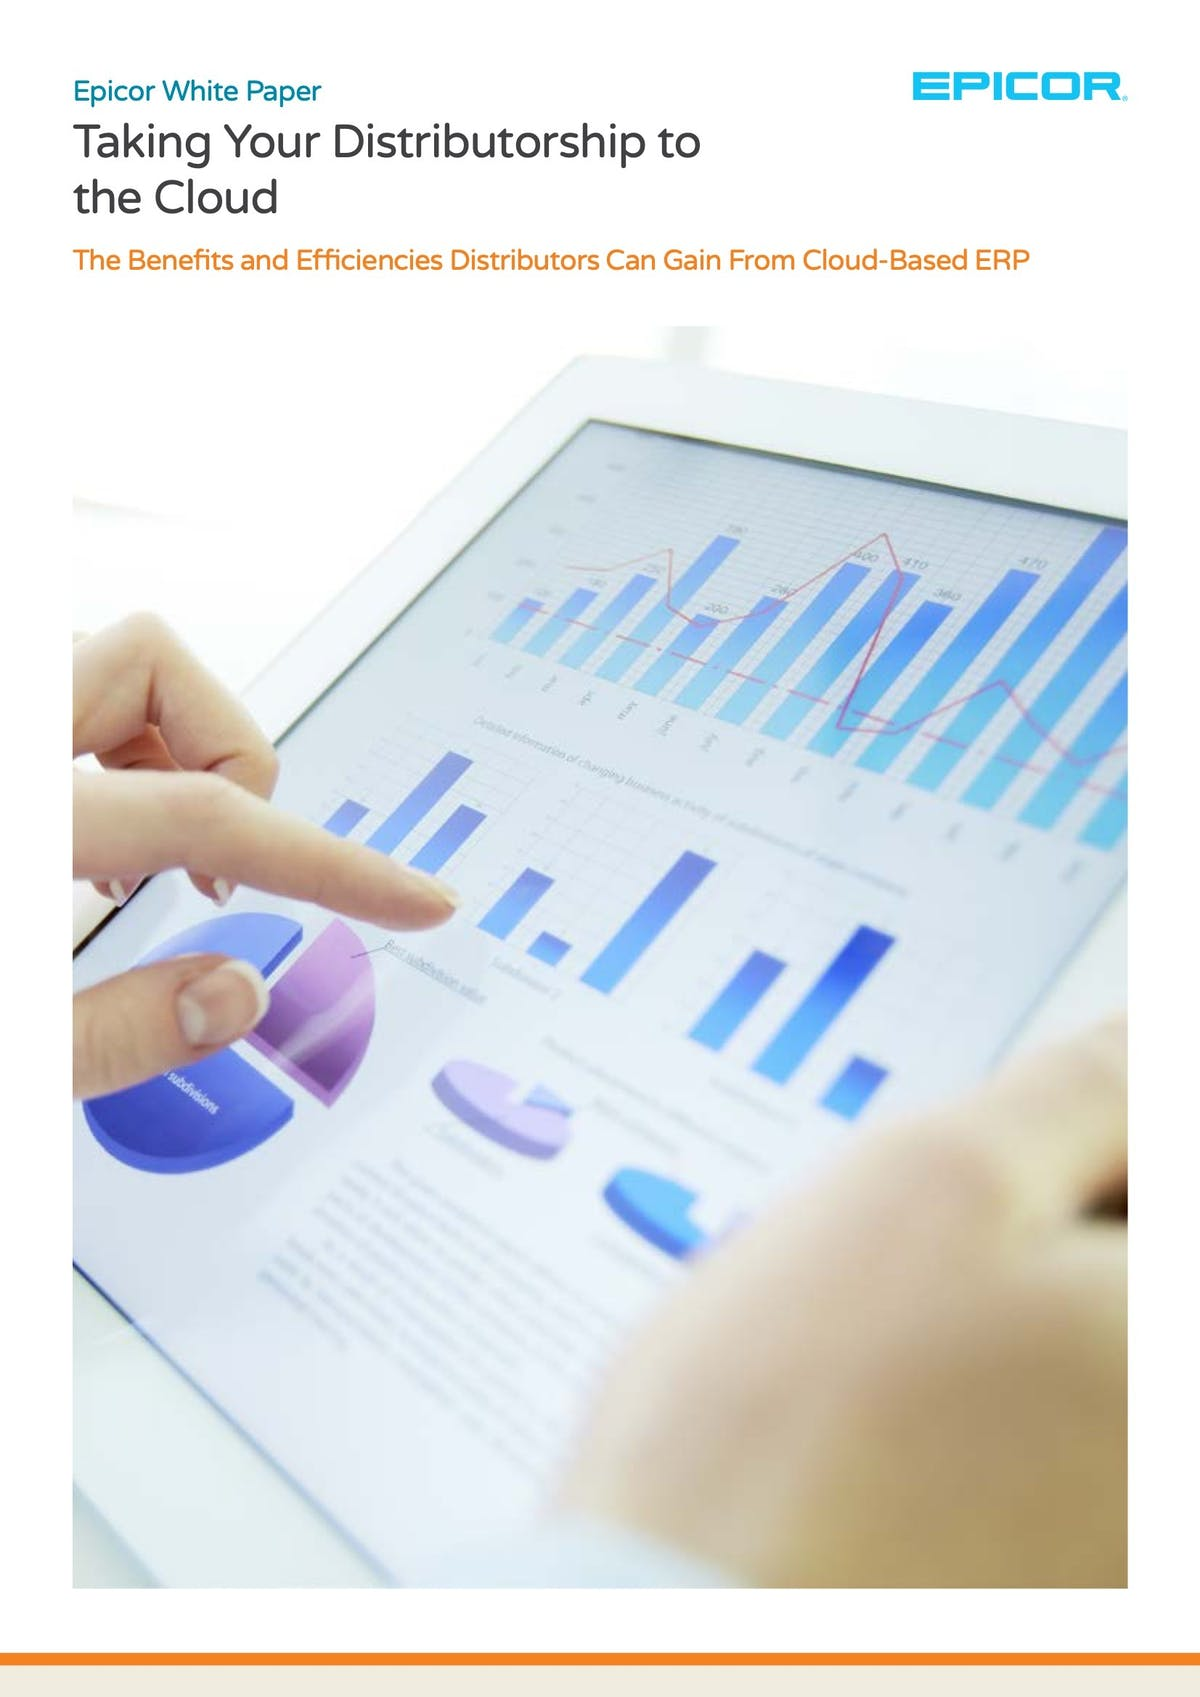 Epicor Eclipse White Paper - Taking Your Distributorship to the Cloud